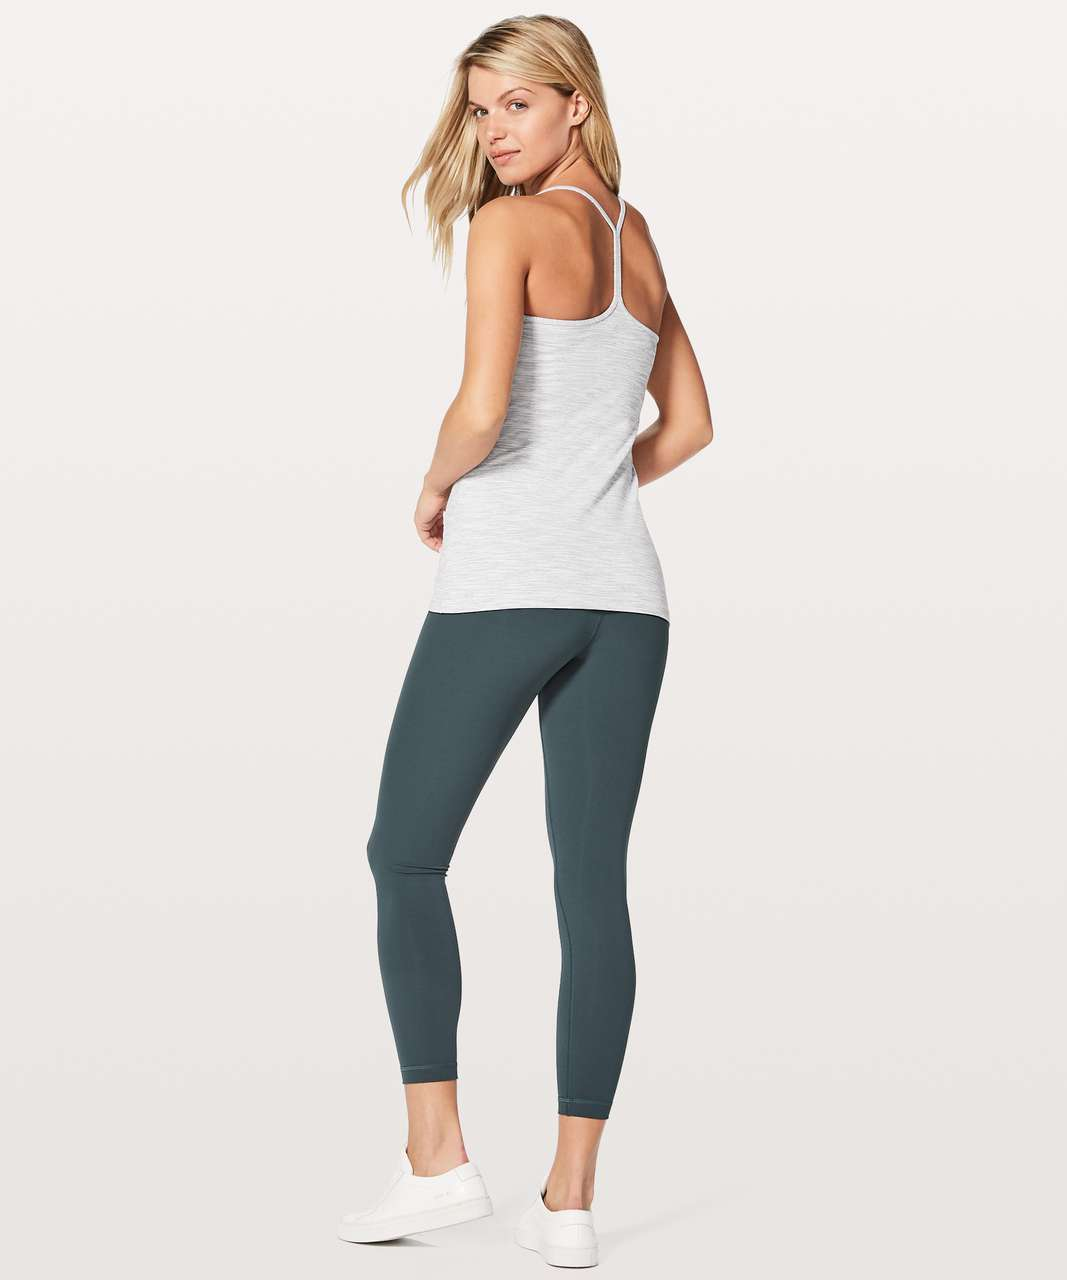 Lululemon Power Pose Tank *Light Support For A/B Cup - Wee Are From Space Nimbus Battleship